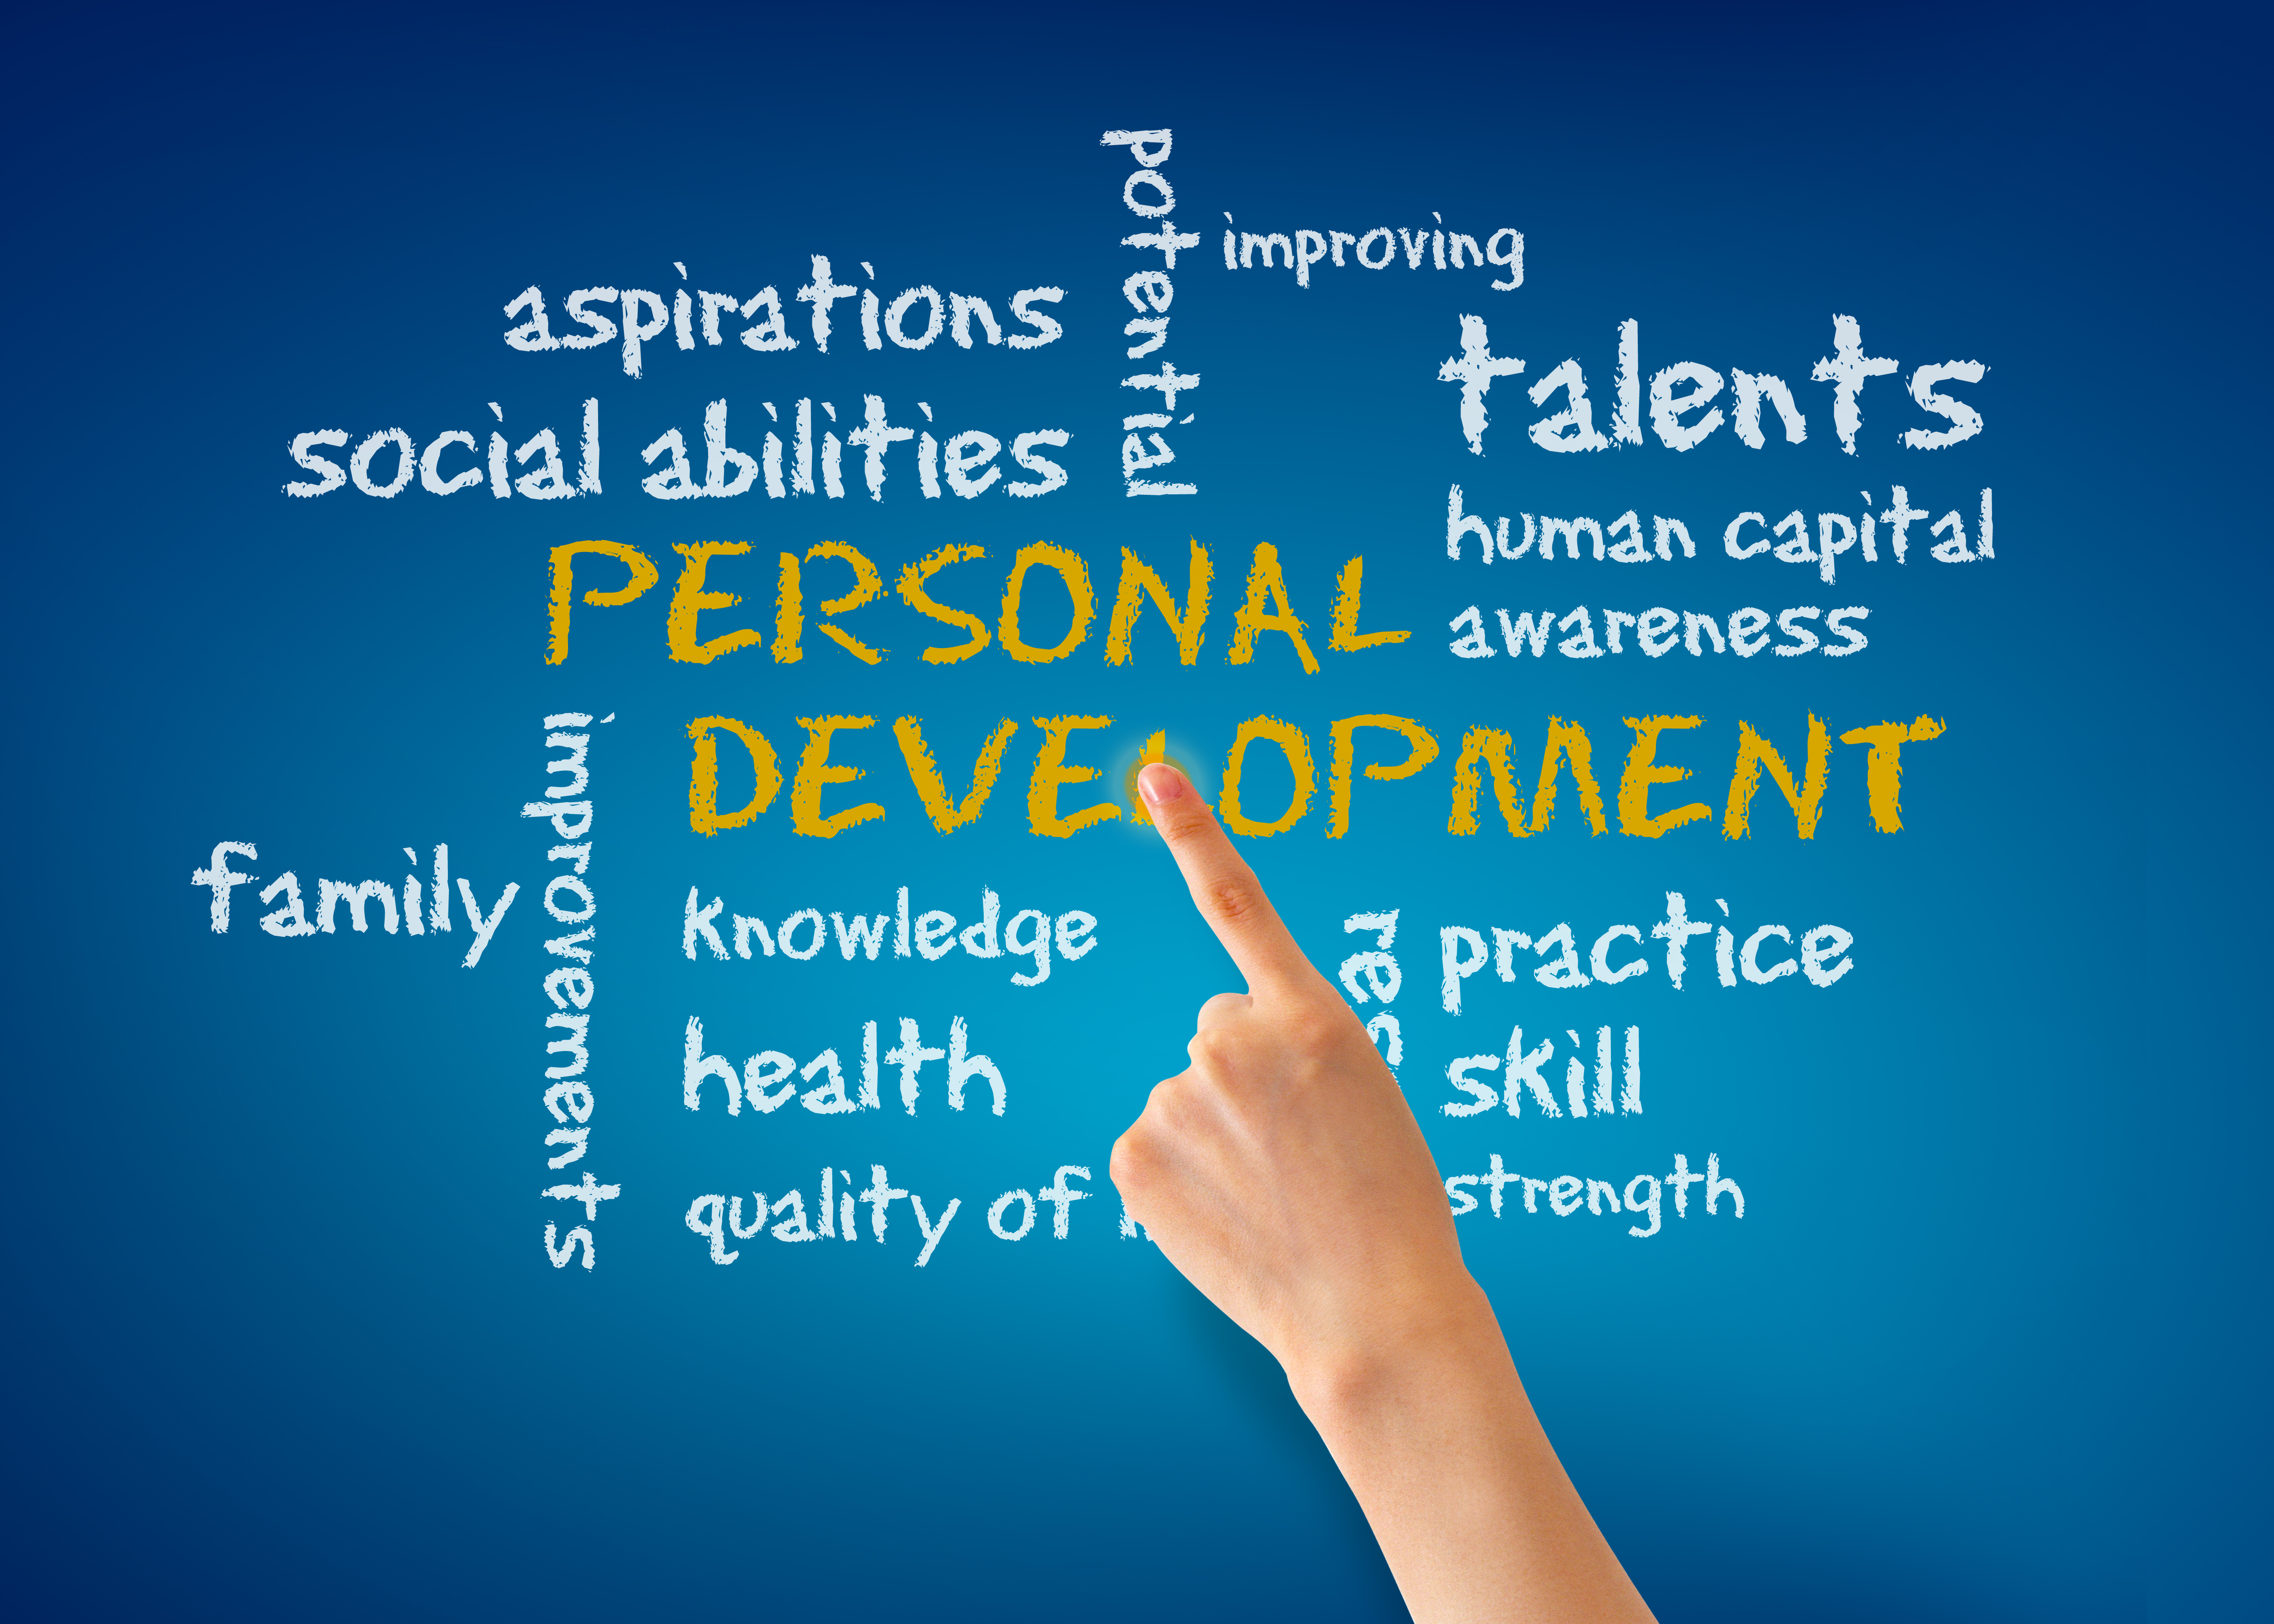 impact of interpersonal skills and capabilities Pearson workforce education personal & social capabilities personal and social capabilities refer to the development of the interpersonal skills and.